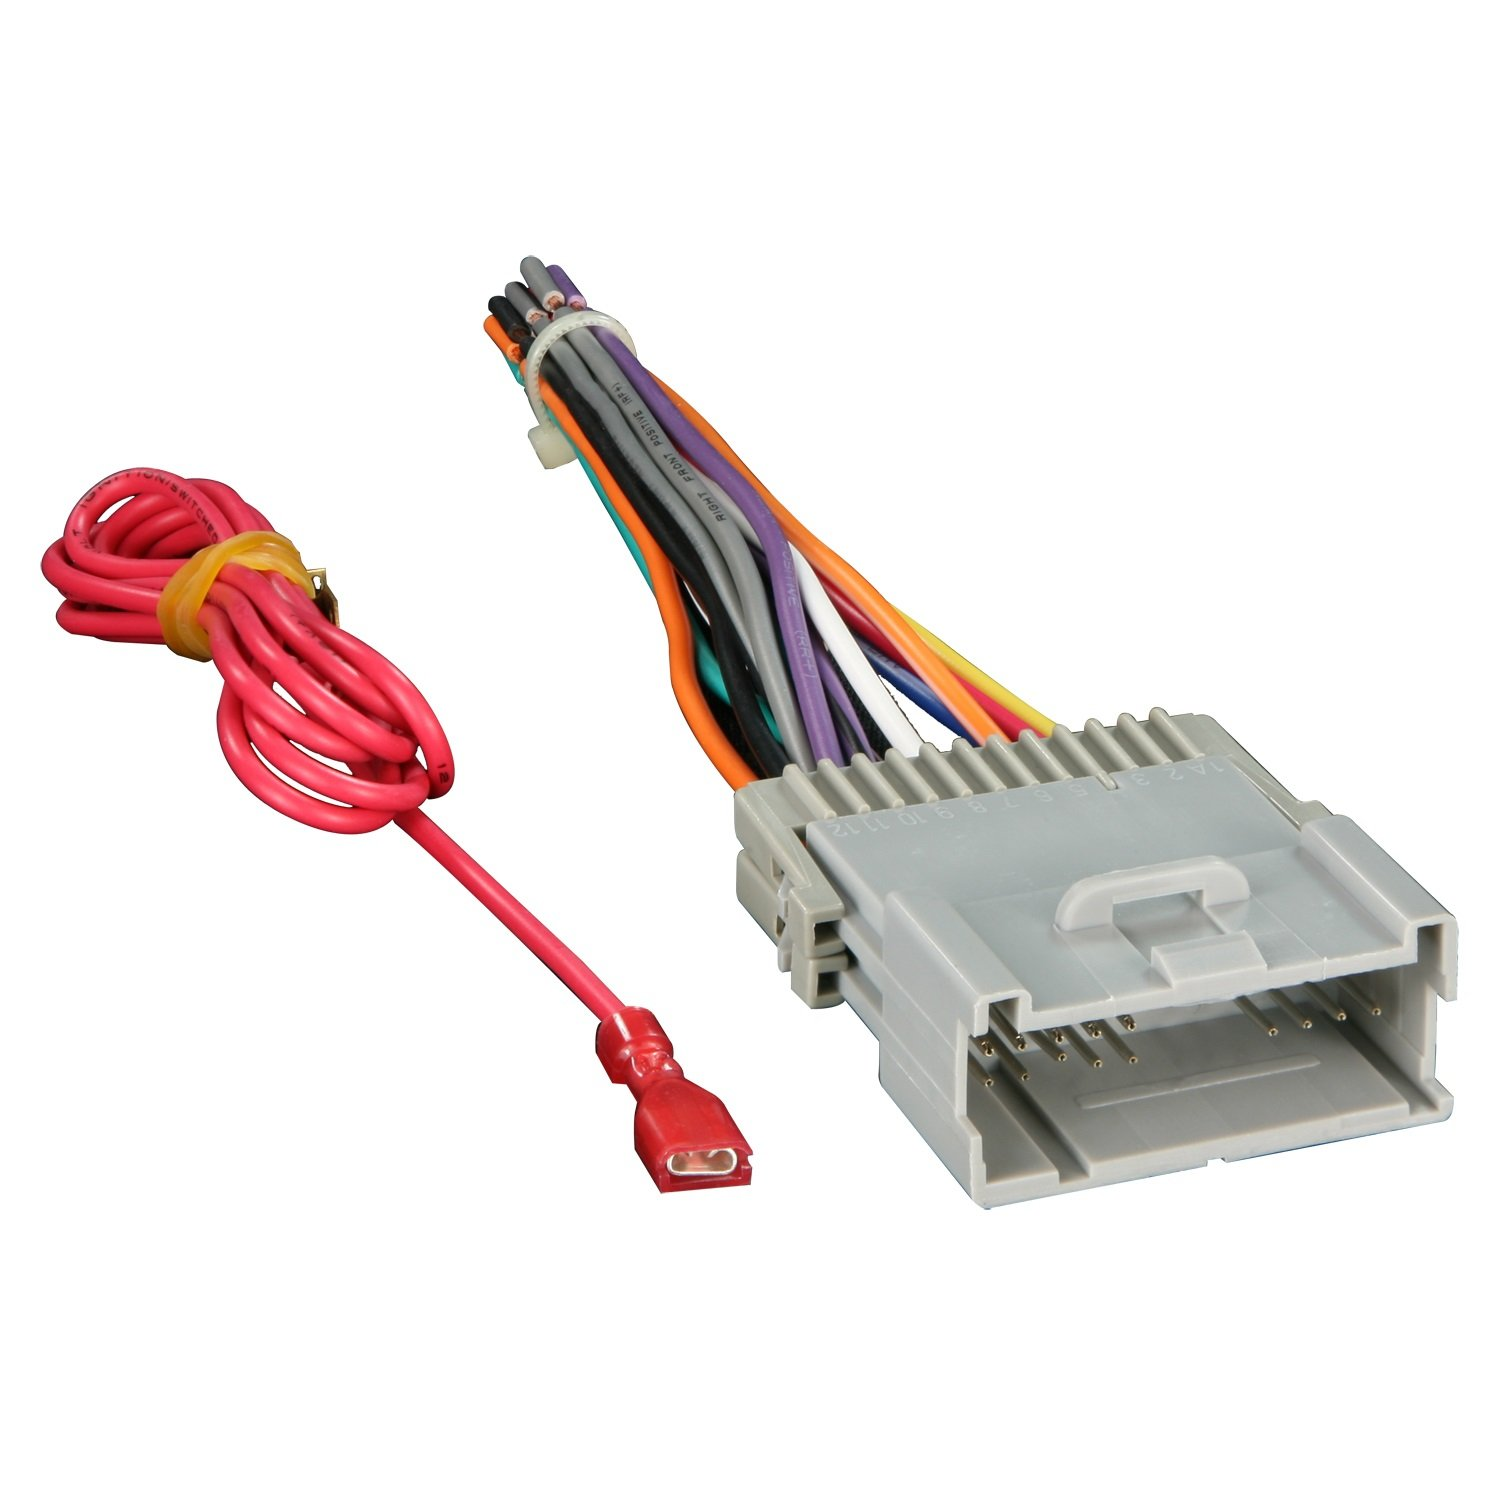 61eewxp9orL._SL1500_ amazon com metra 70 2003 radio wiring harness for gm 98 08  at readyjetset.co